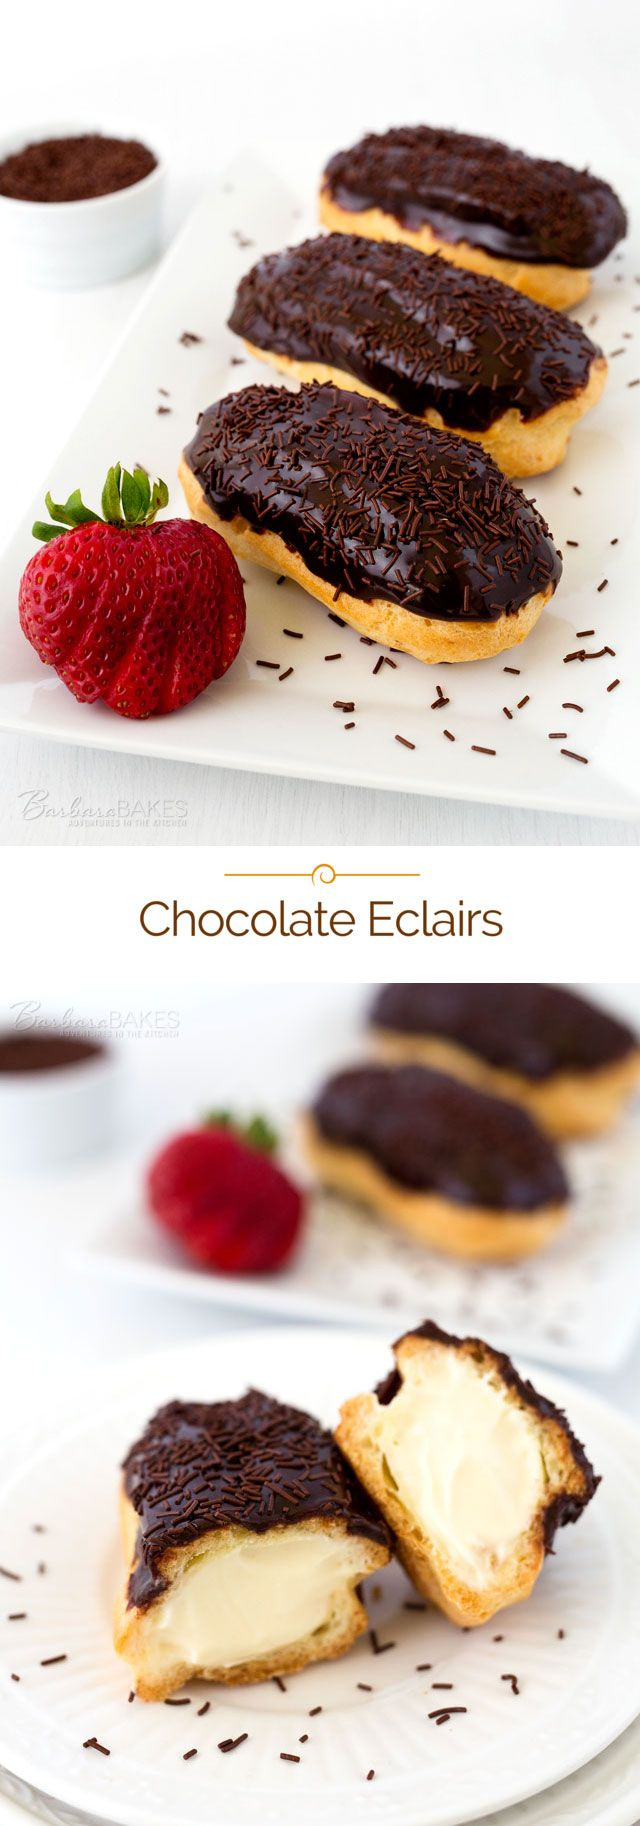 Beautiful Chocolate Eclairs via @barbarabakes made by filling a crisp, buttery eclair shell with a light, creamy vanilla pastry cream and glazing it with a rich, chocolate icing.